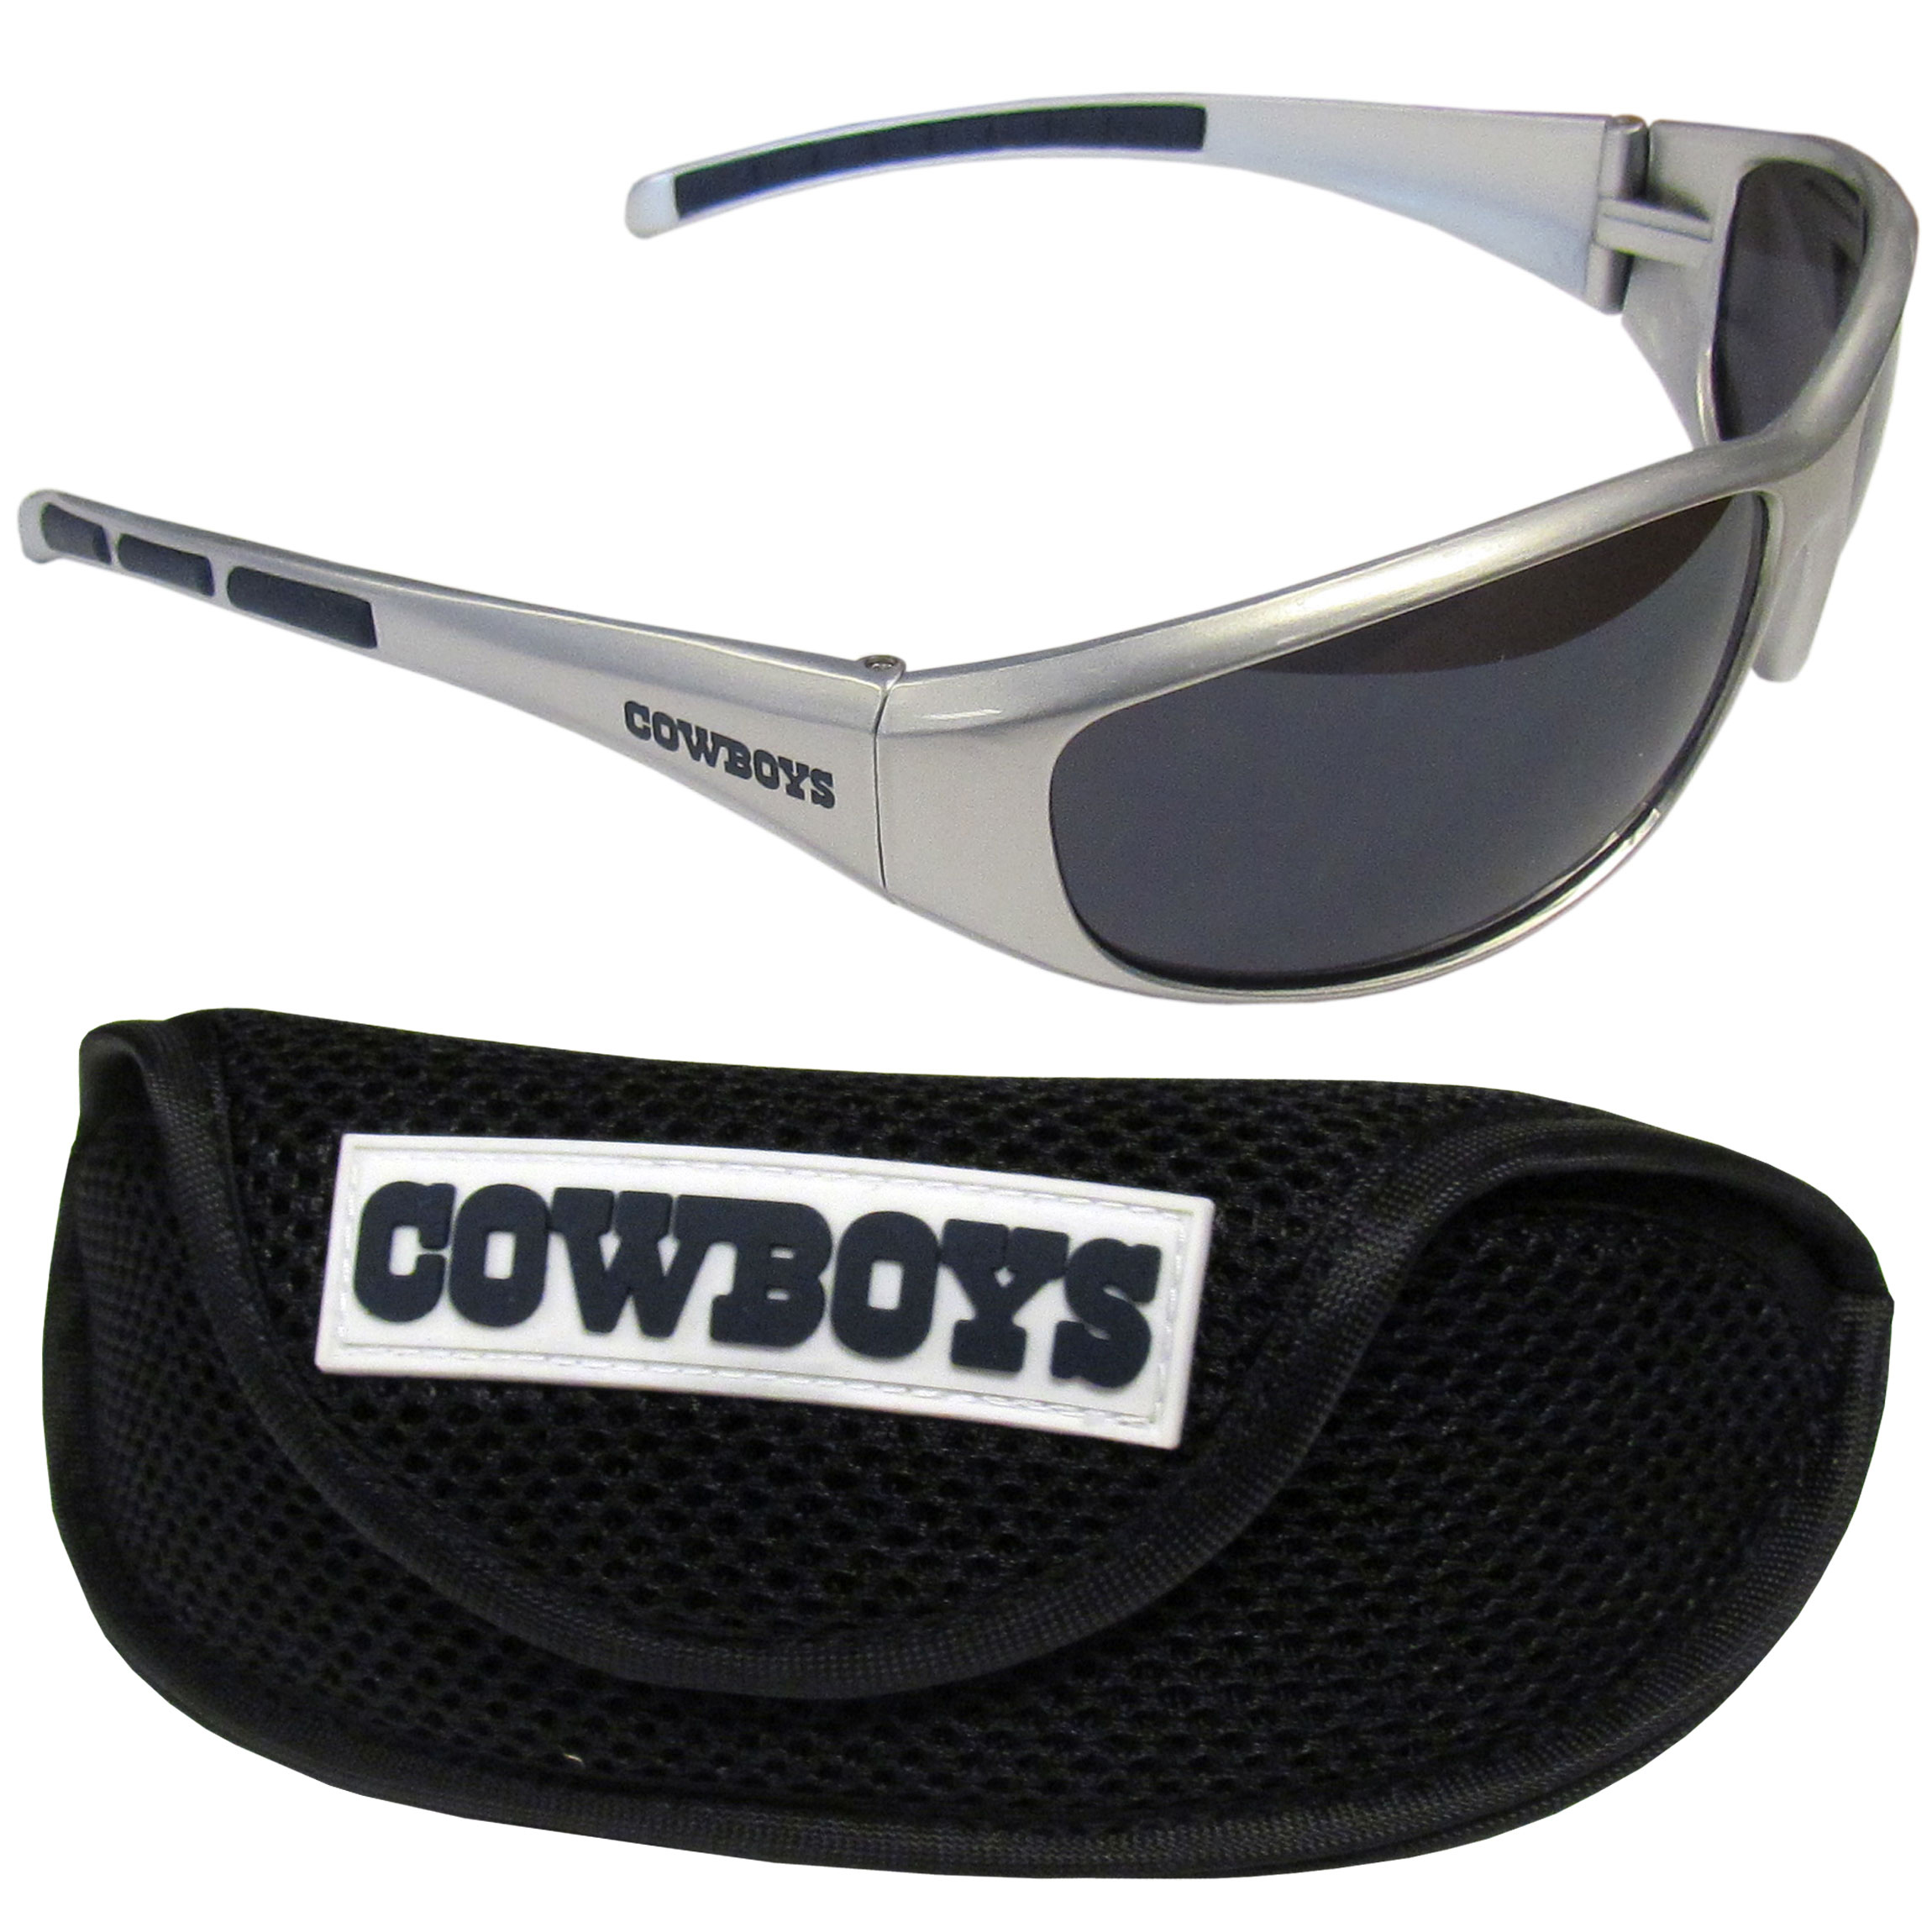 Dallas Cowboys Wrap Sunglass and Case Set - This great set includes a high quality pair of Dallas Cowboys wrap sunglasses and sport carrying case.